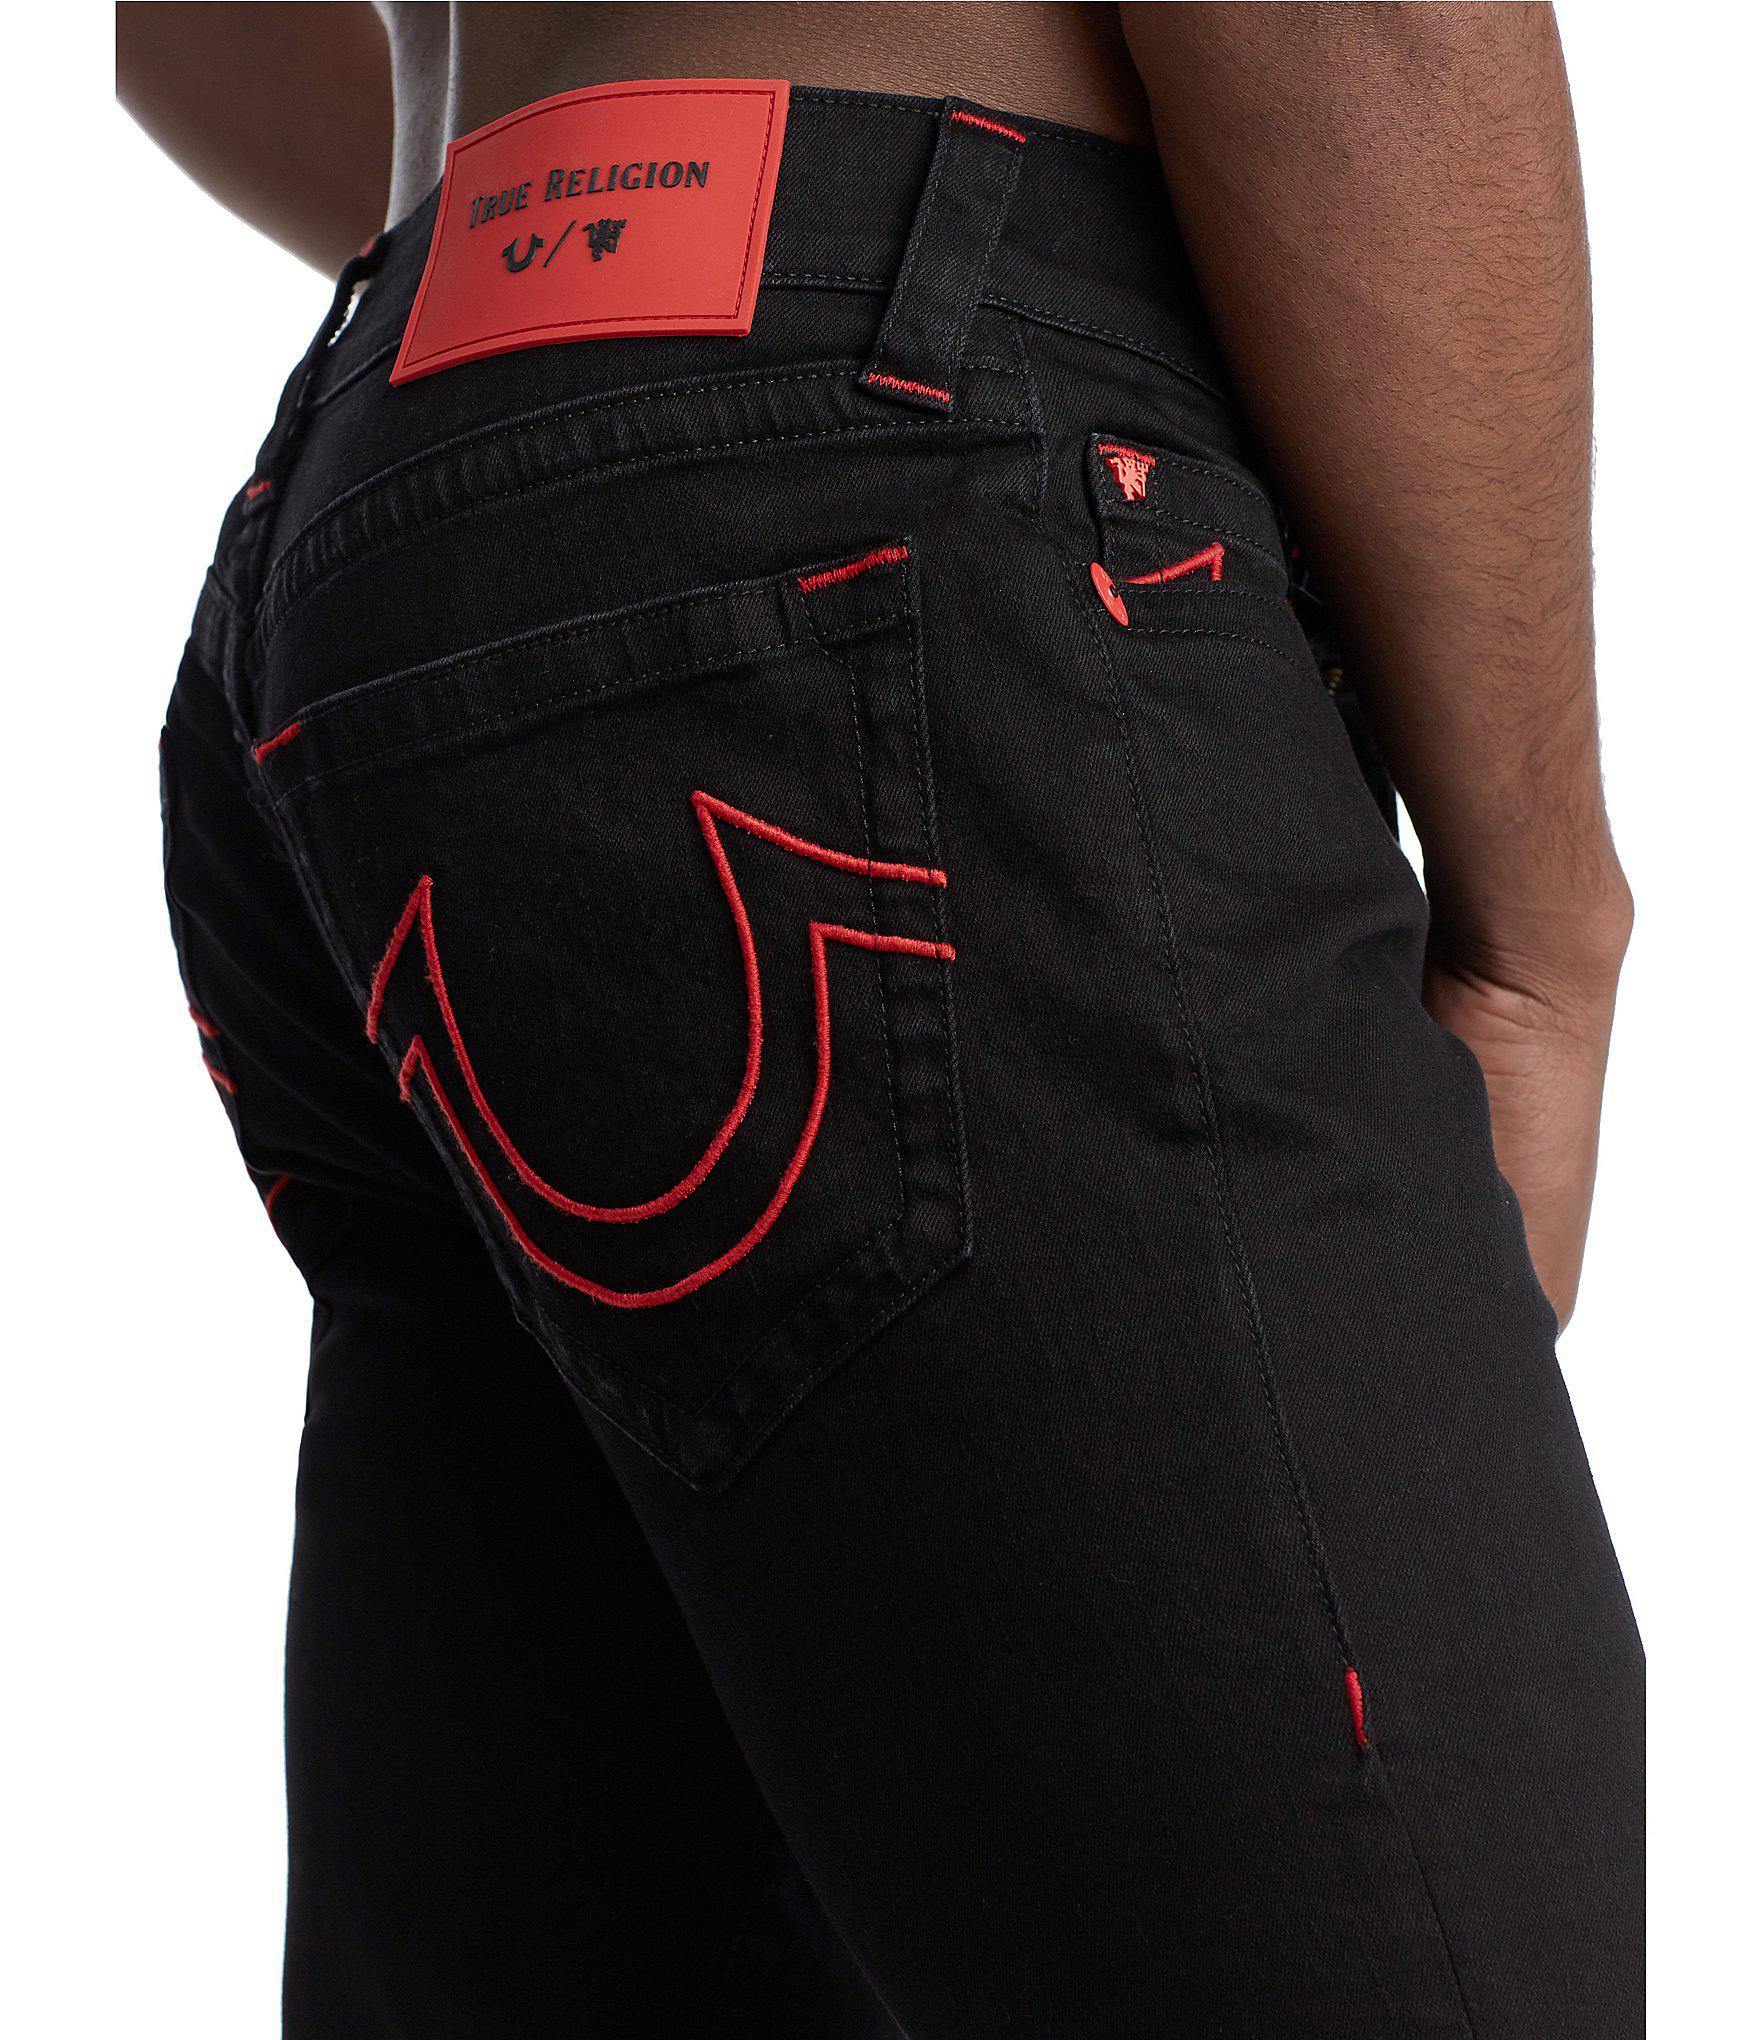 ee4284f24 True Religion - Black Manchester United Denim Collection Rocco Skinny Fit  Jeans for Men - Lyst. View fullscreen